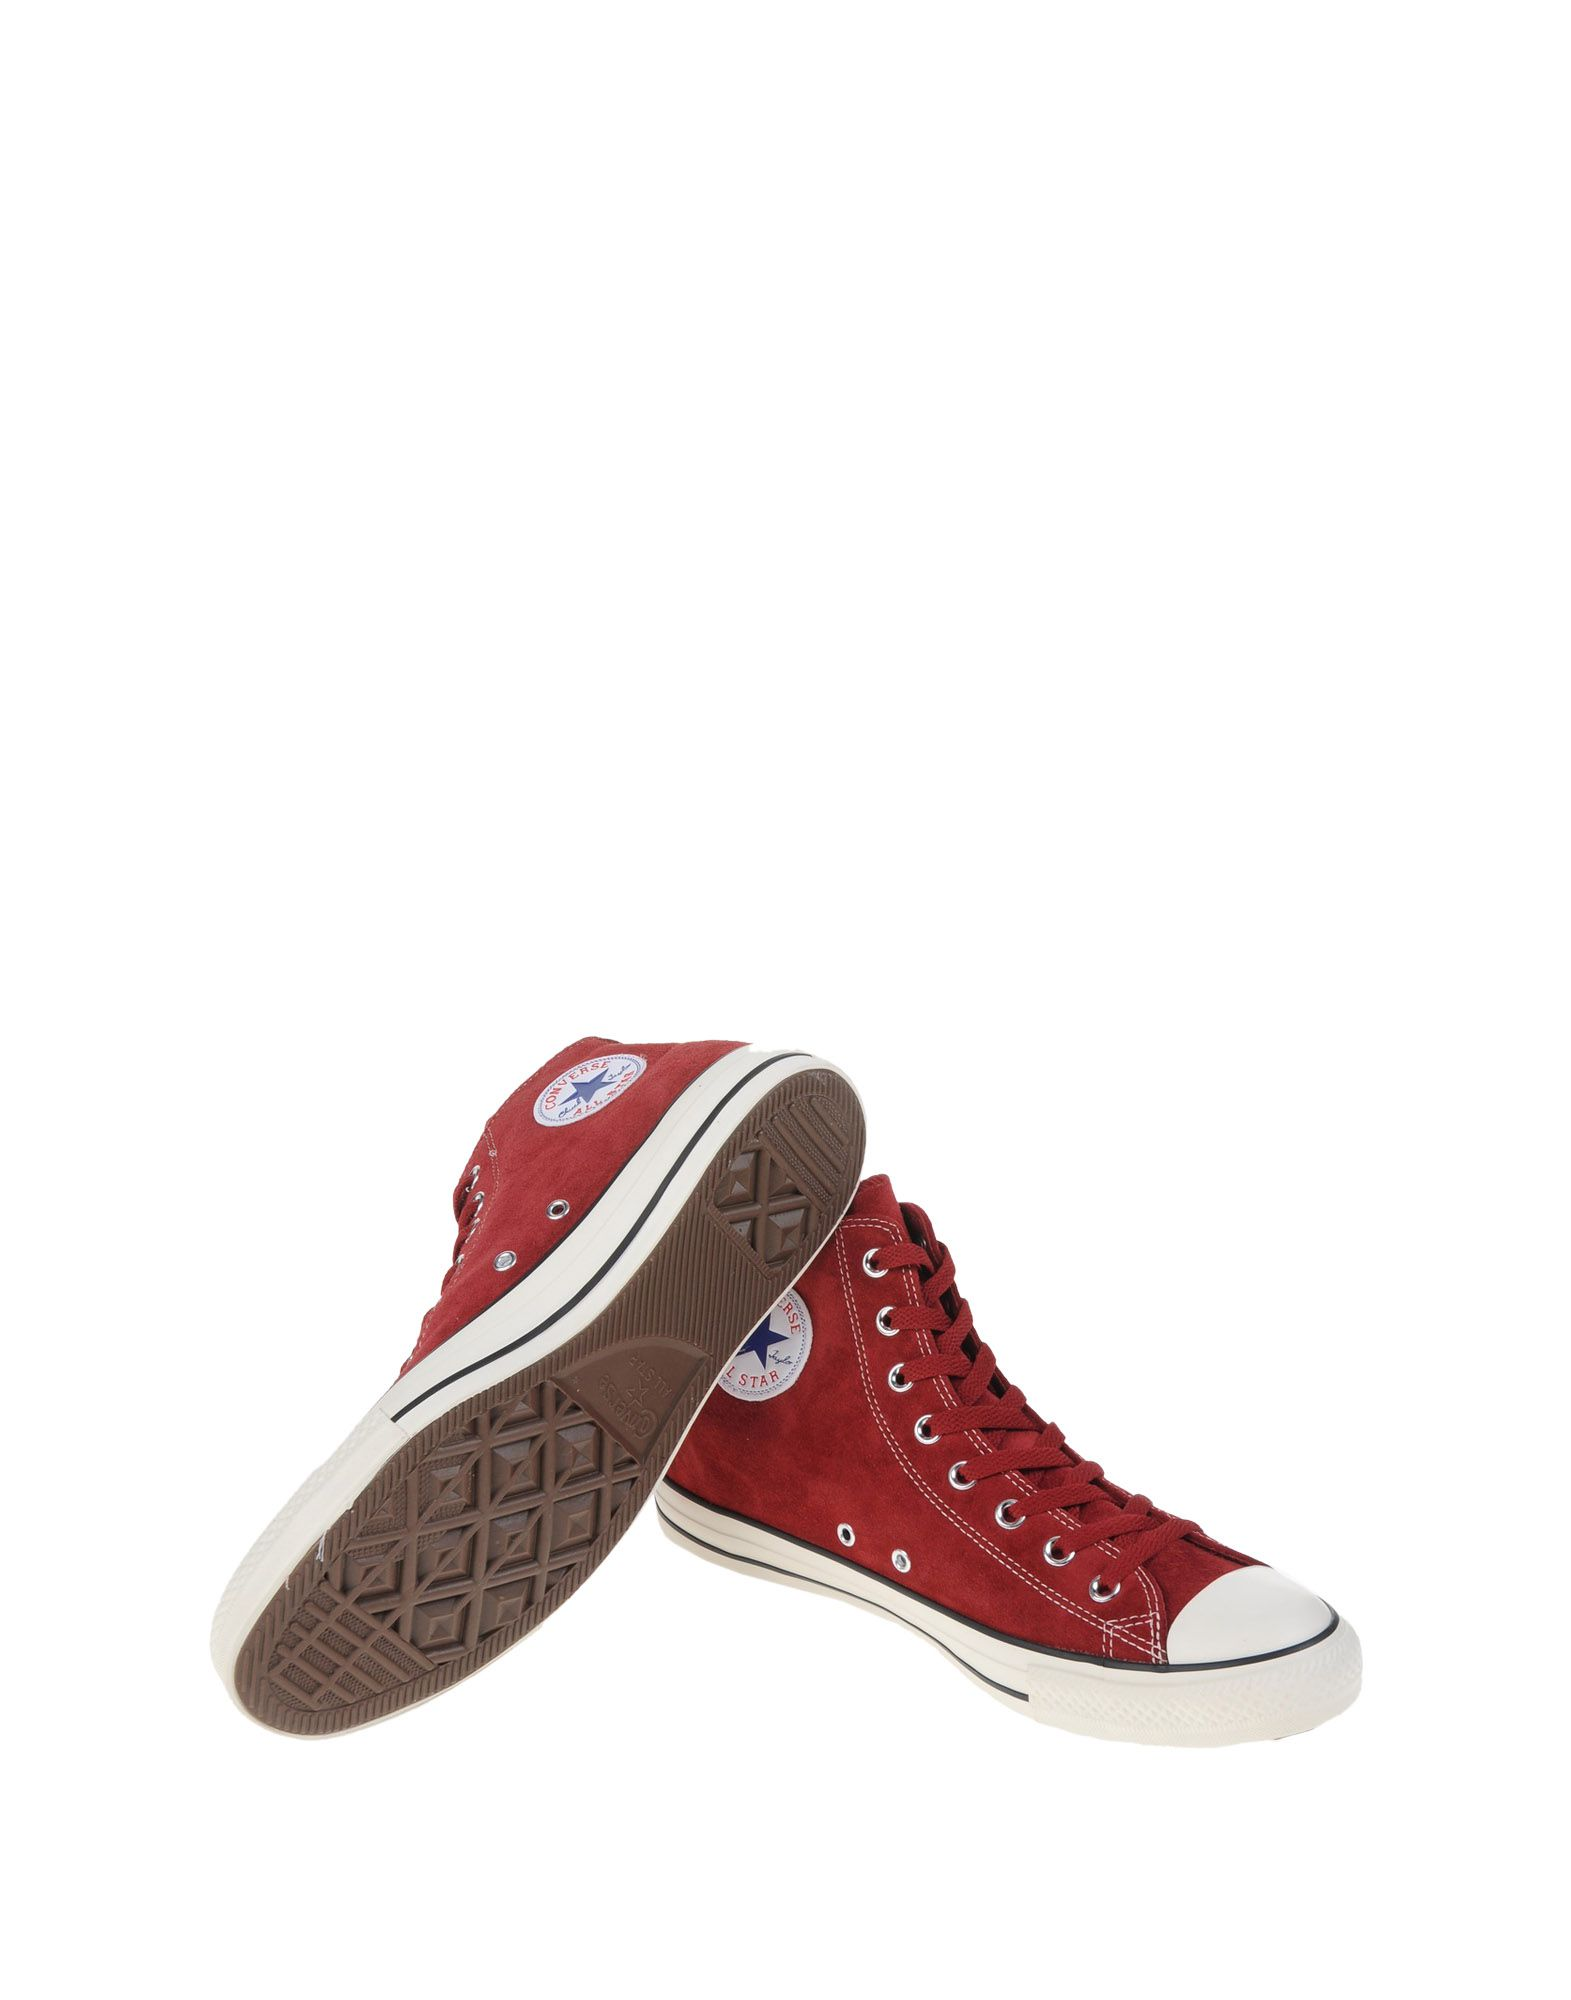 Sneakers Converse All Star All Star Hi Suede - Homme - Sneakers Converse All Star sur